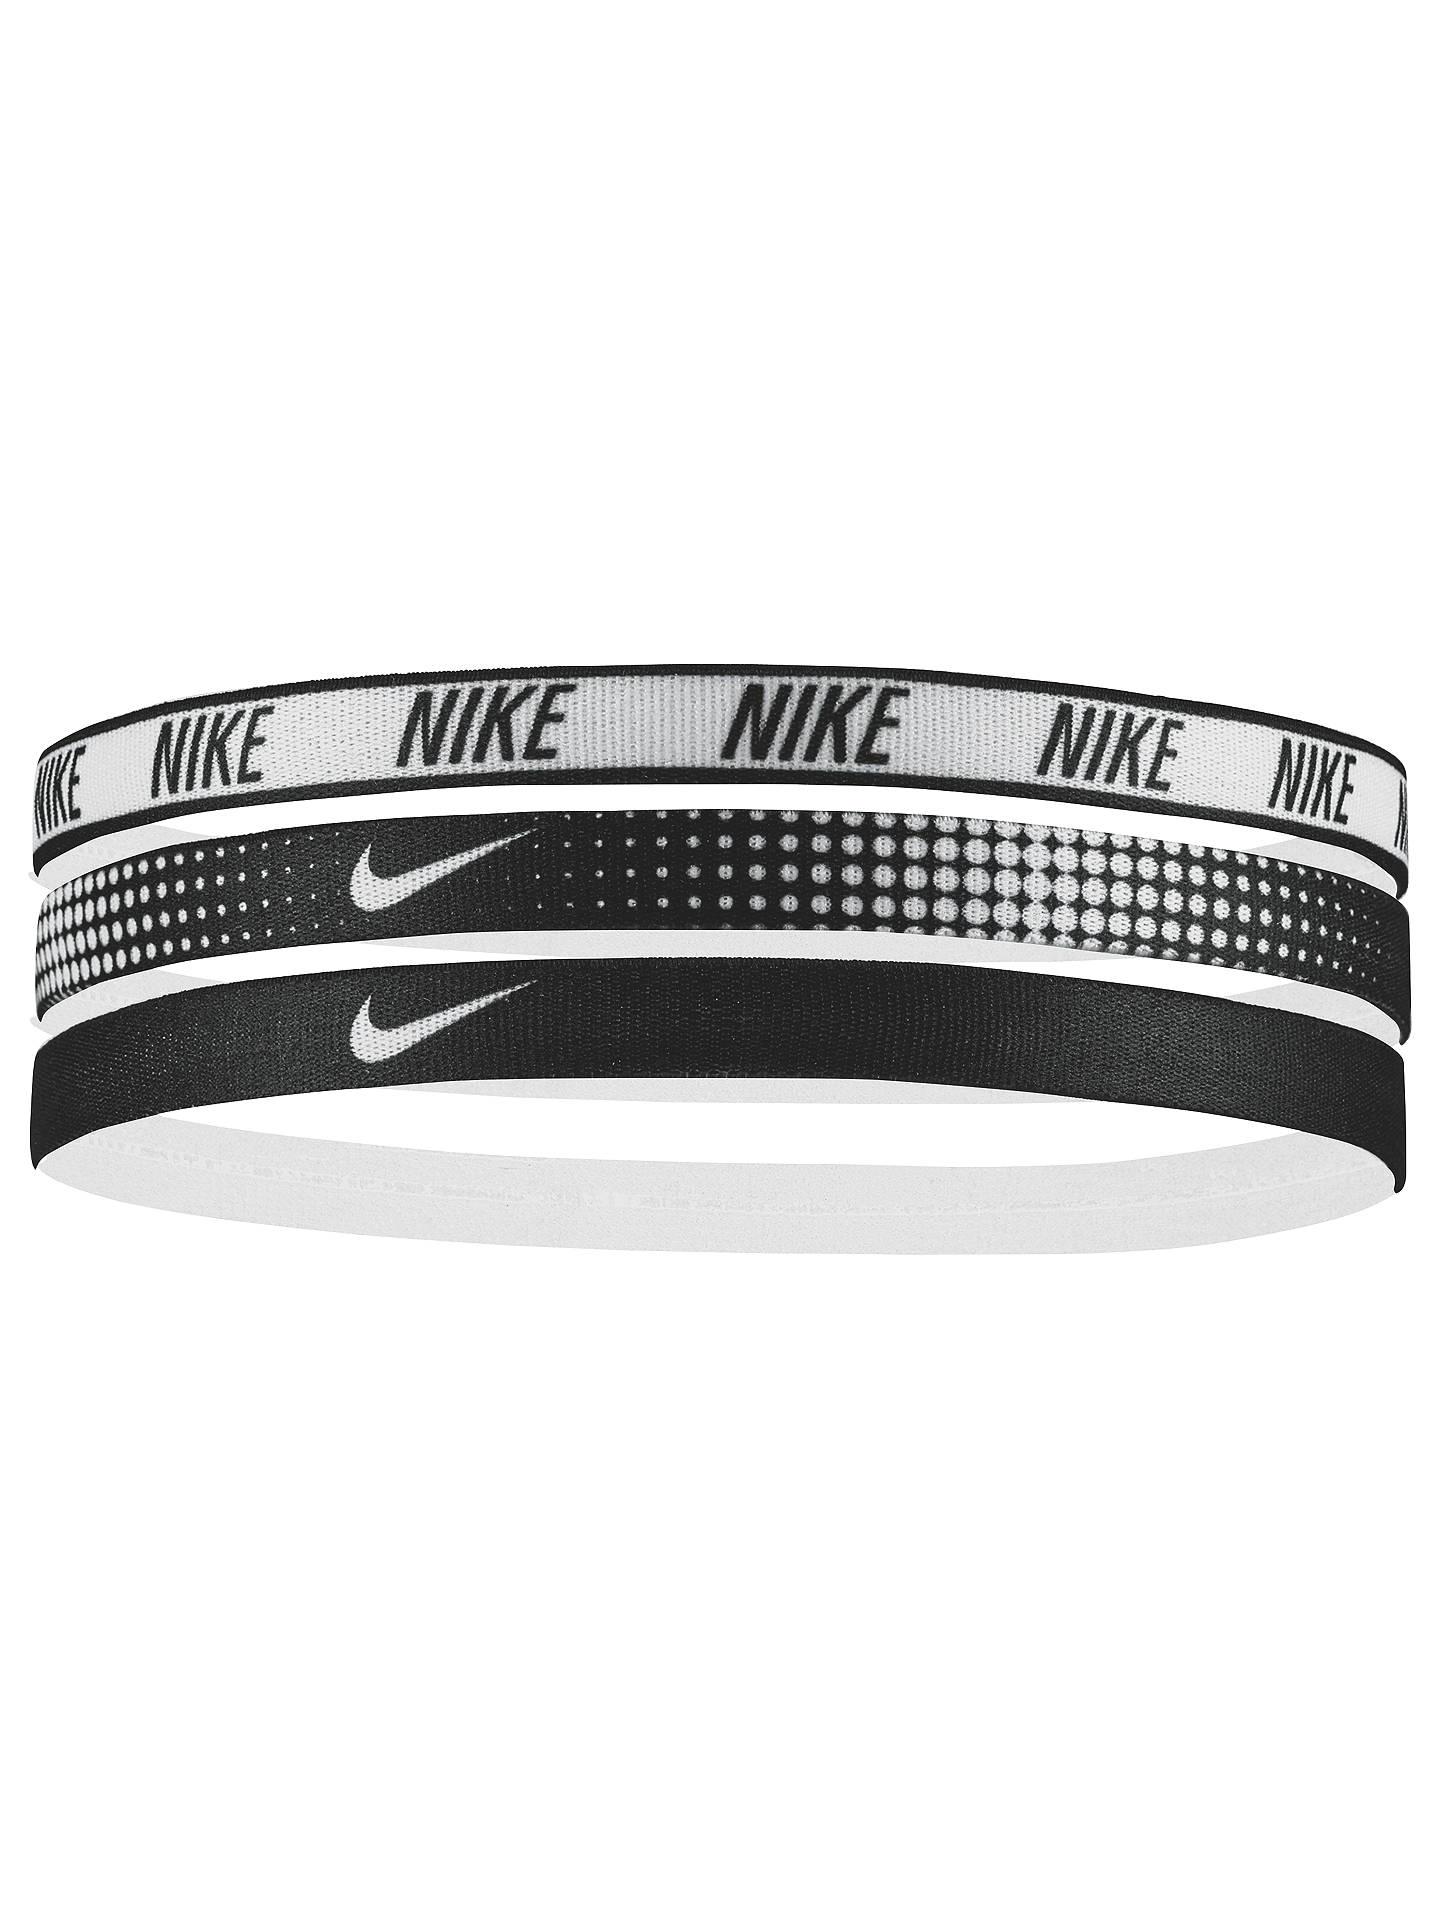 BuyNike Elastic Headband, Pack of 3, Black/White Online at johnlewis.com